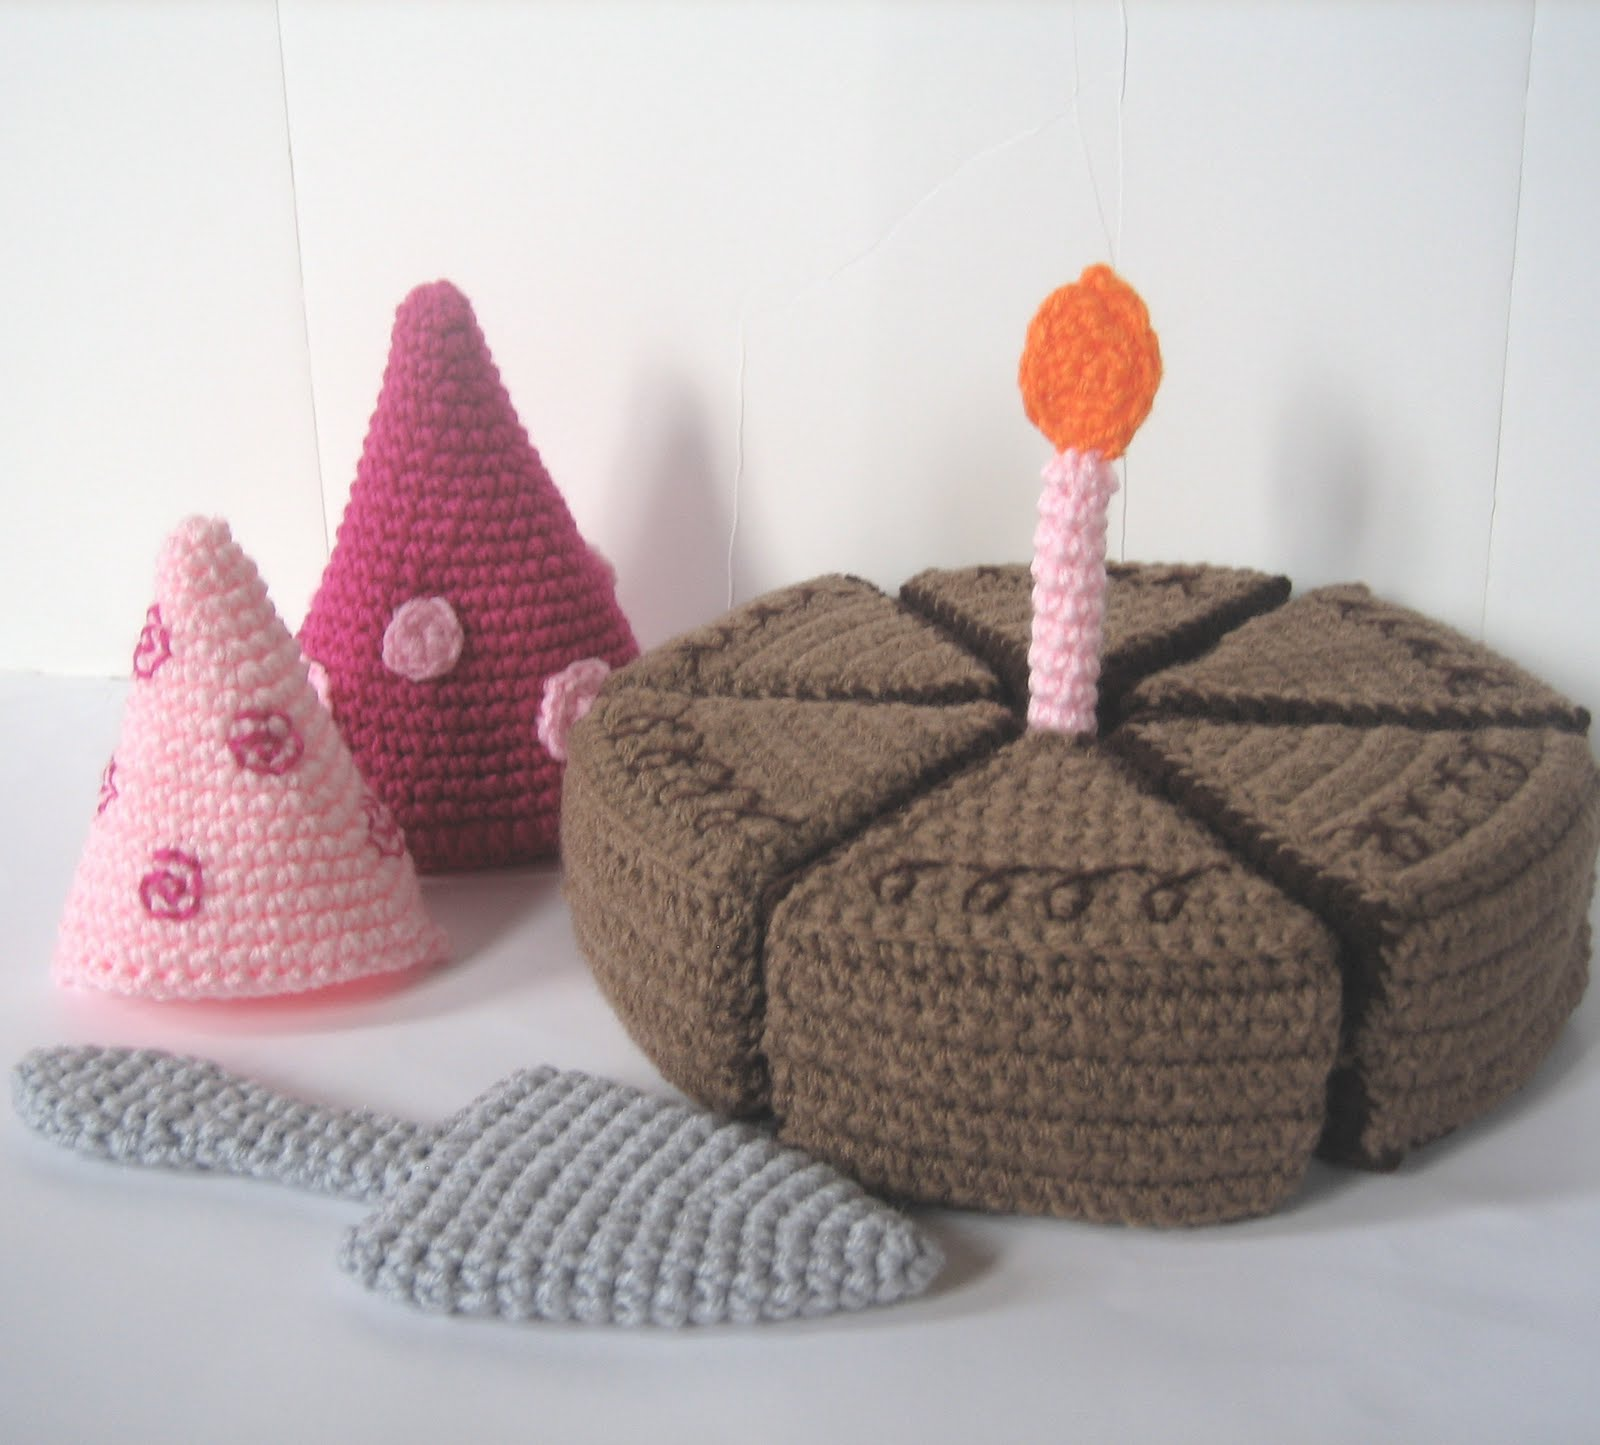 CROCHET N PLAY DESIGNS: New Crochet Pattern: Birthday Cake